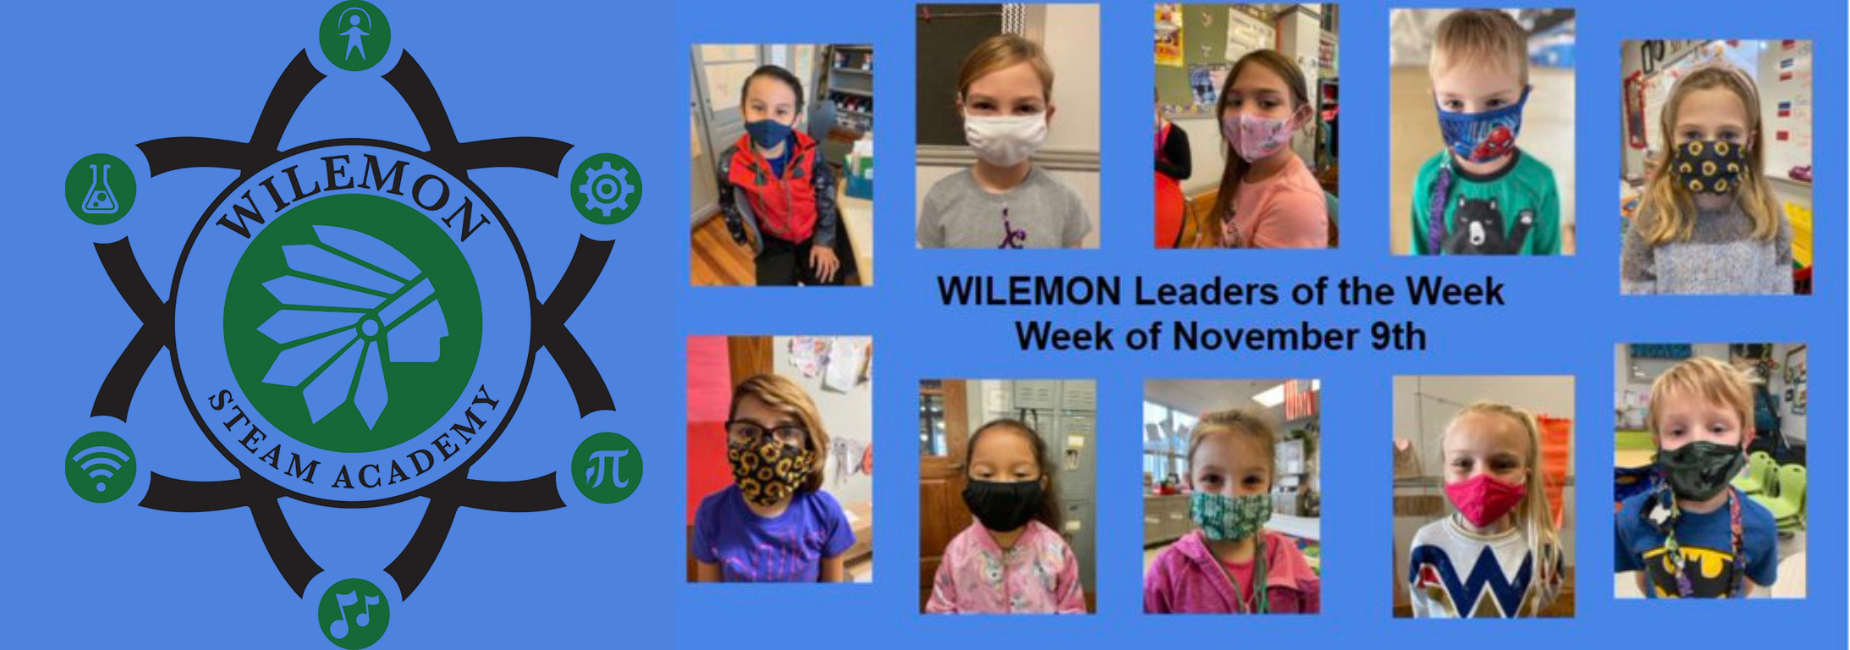 collage of young students wearing facemasks that are leaders of the week